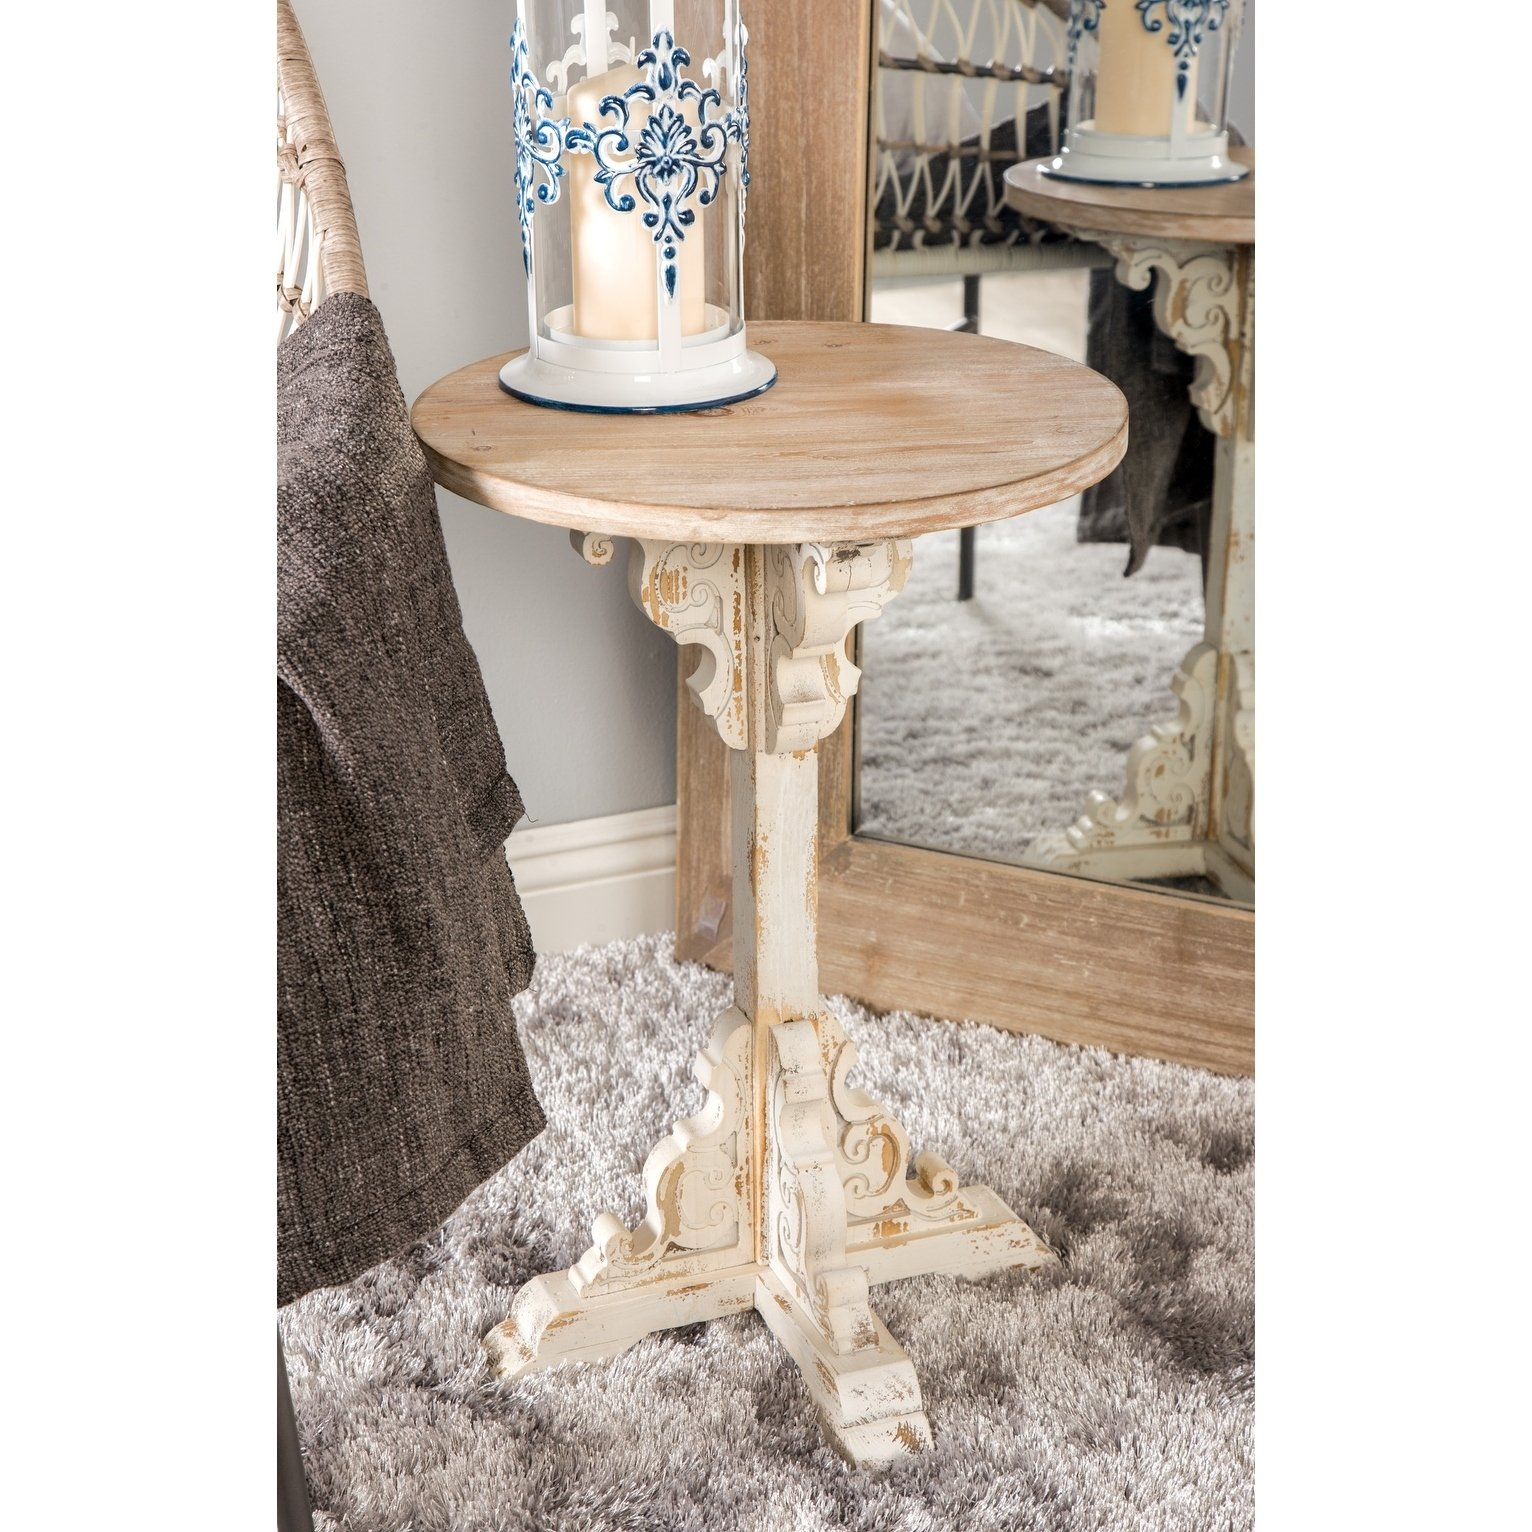 traditional inch round wood accent table distressed white studio free shipping today vintage nightstands outdoor wicker gold and marble coffee home hardware furniture coca cola